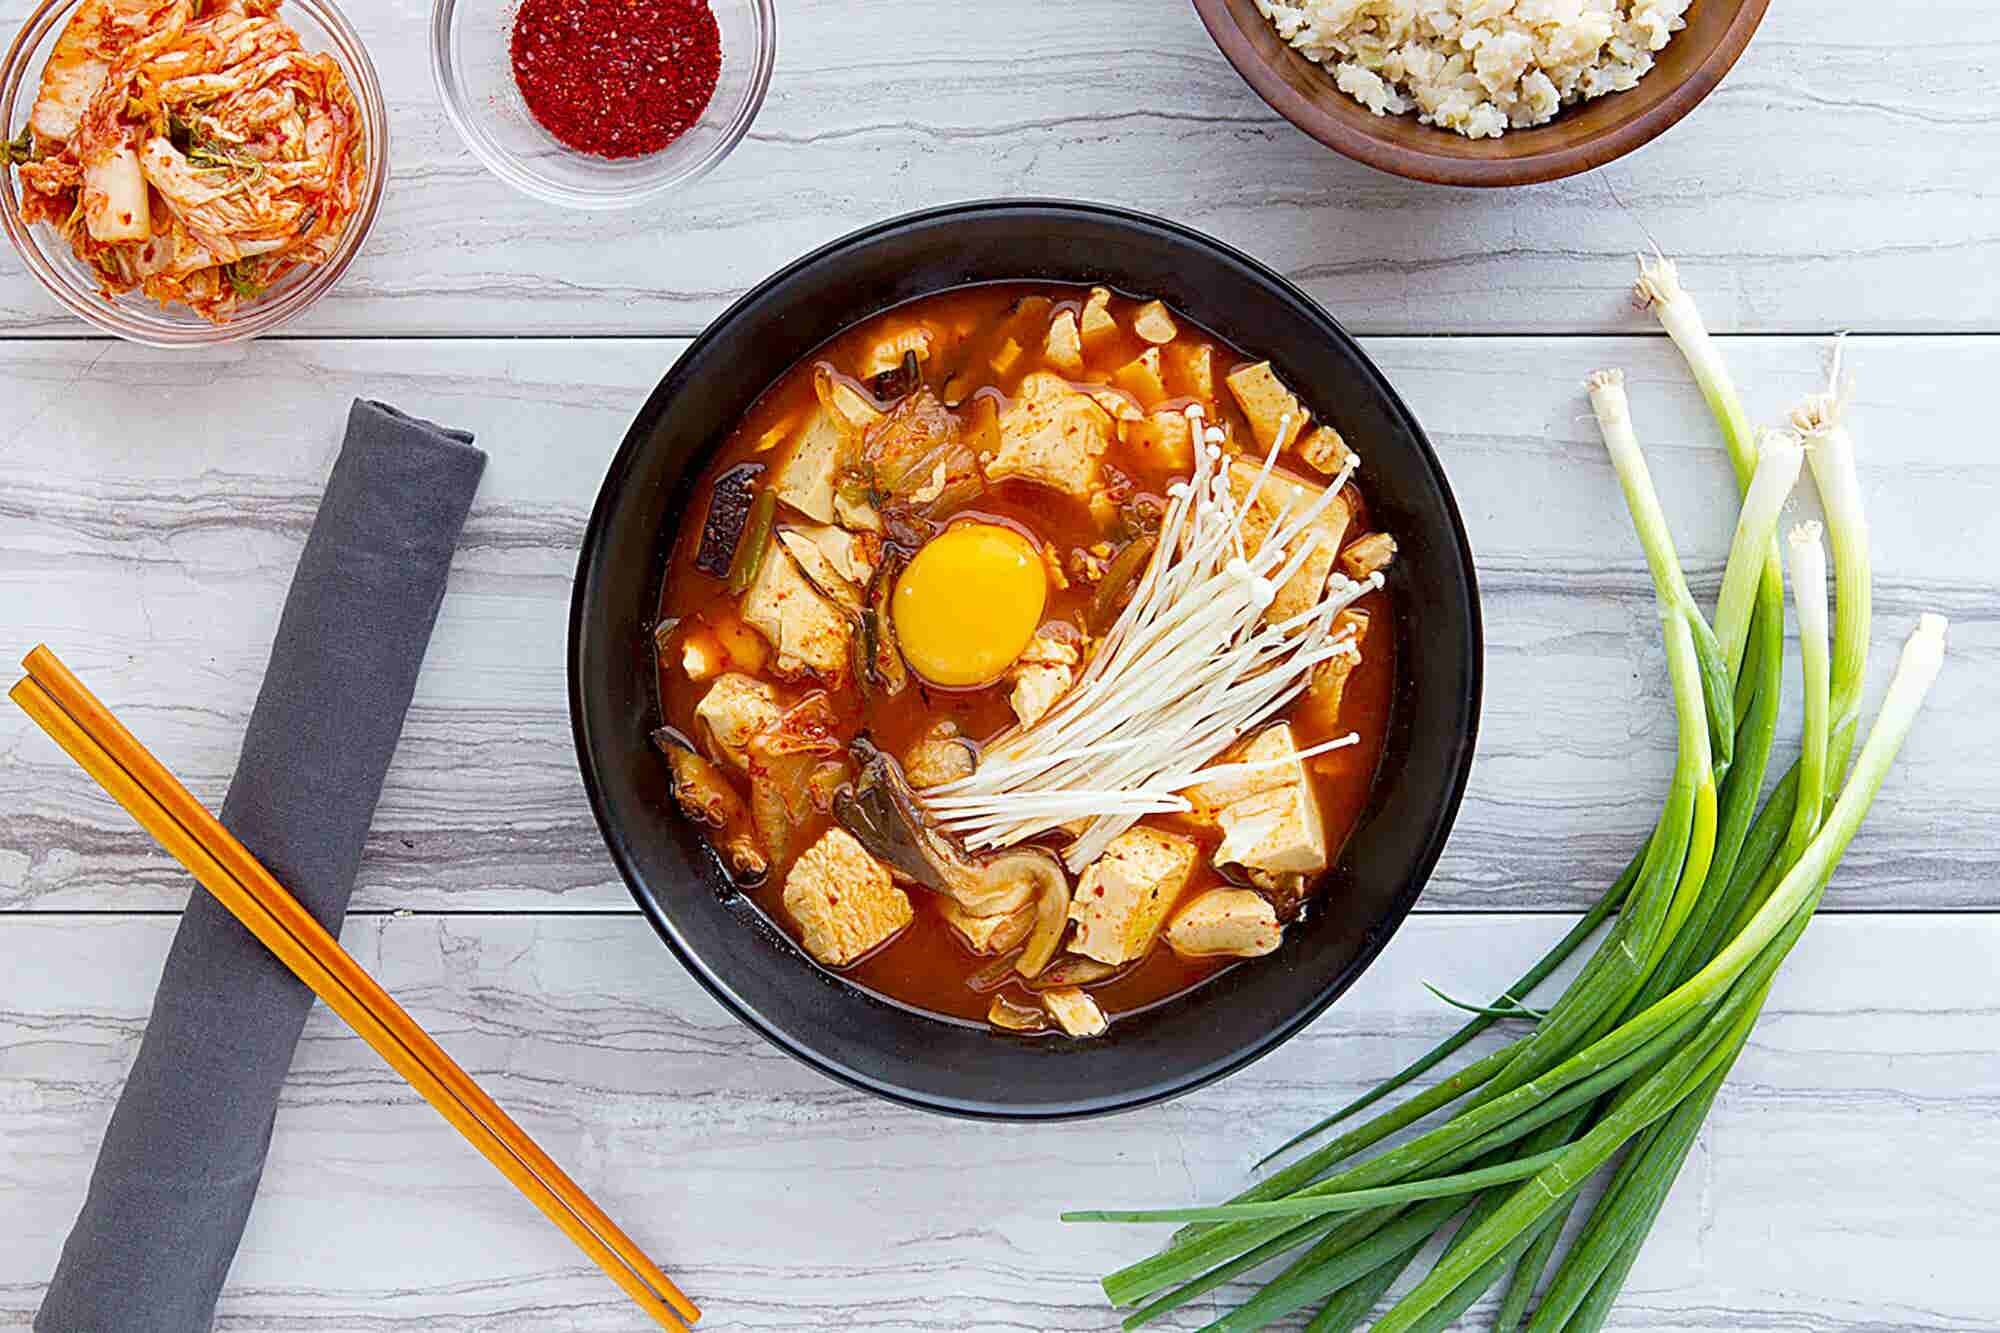 Walmart Partners With Meal Kit Company Gobble